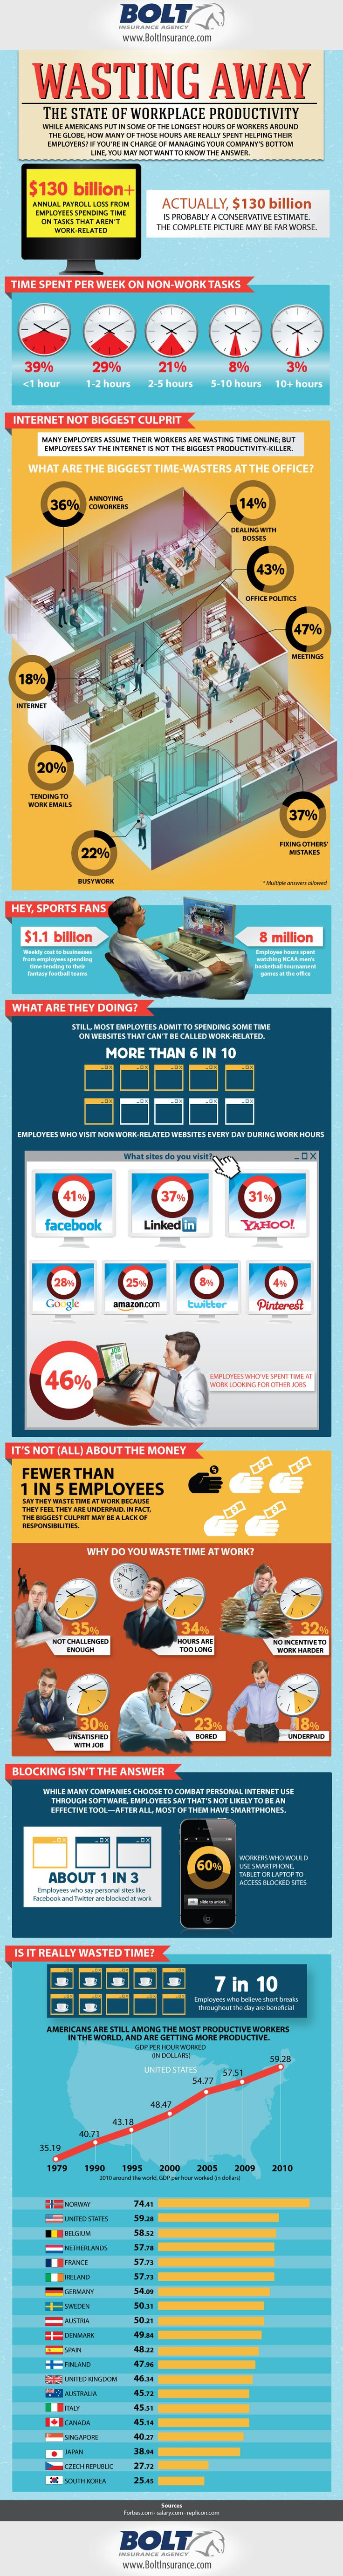 : Infographic Work, The Offices, Workplace Products Infographic, Wasting Time, Socialmedia, U.S. States, Dysfunctional Workplace, Medium, Business Infographic